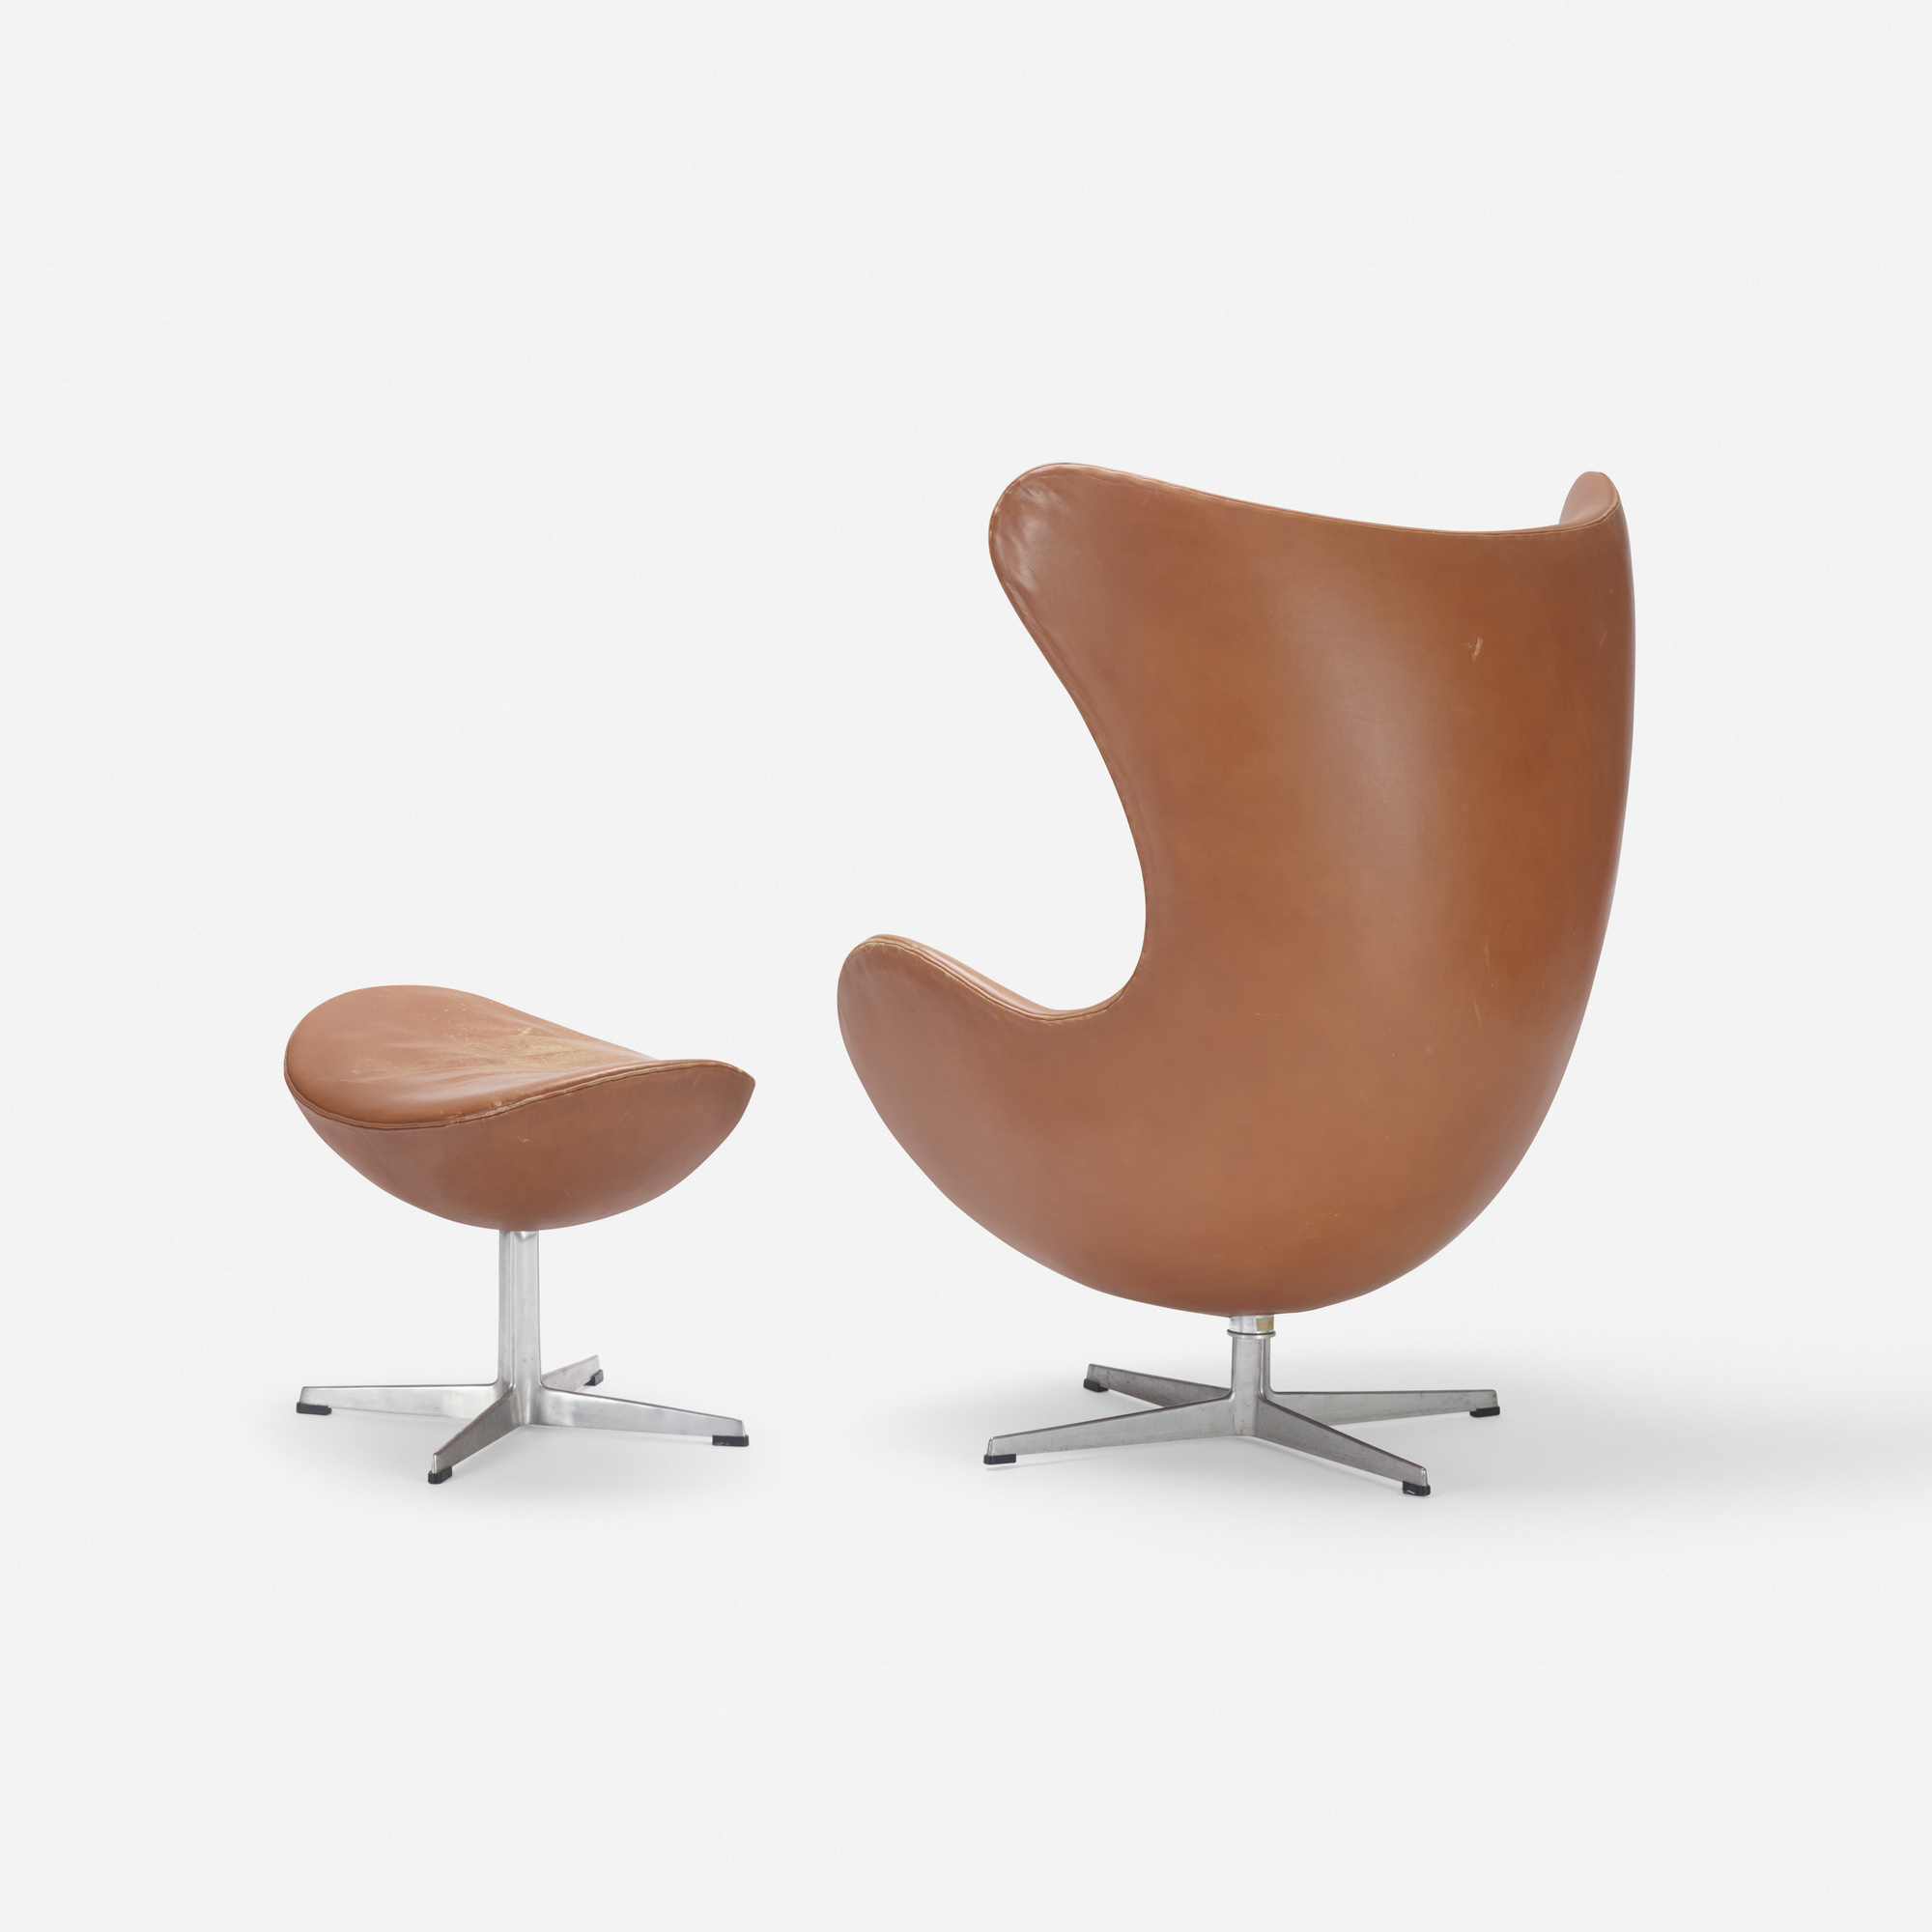 282: ARNE JACOBSEN, Egg chair and ottoman < Design, 22 March 2018 ...